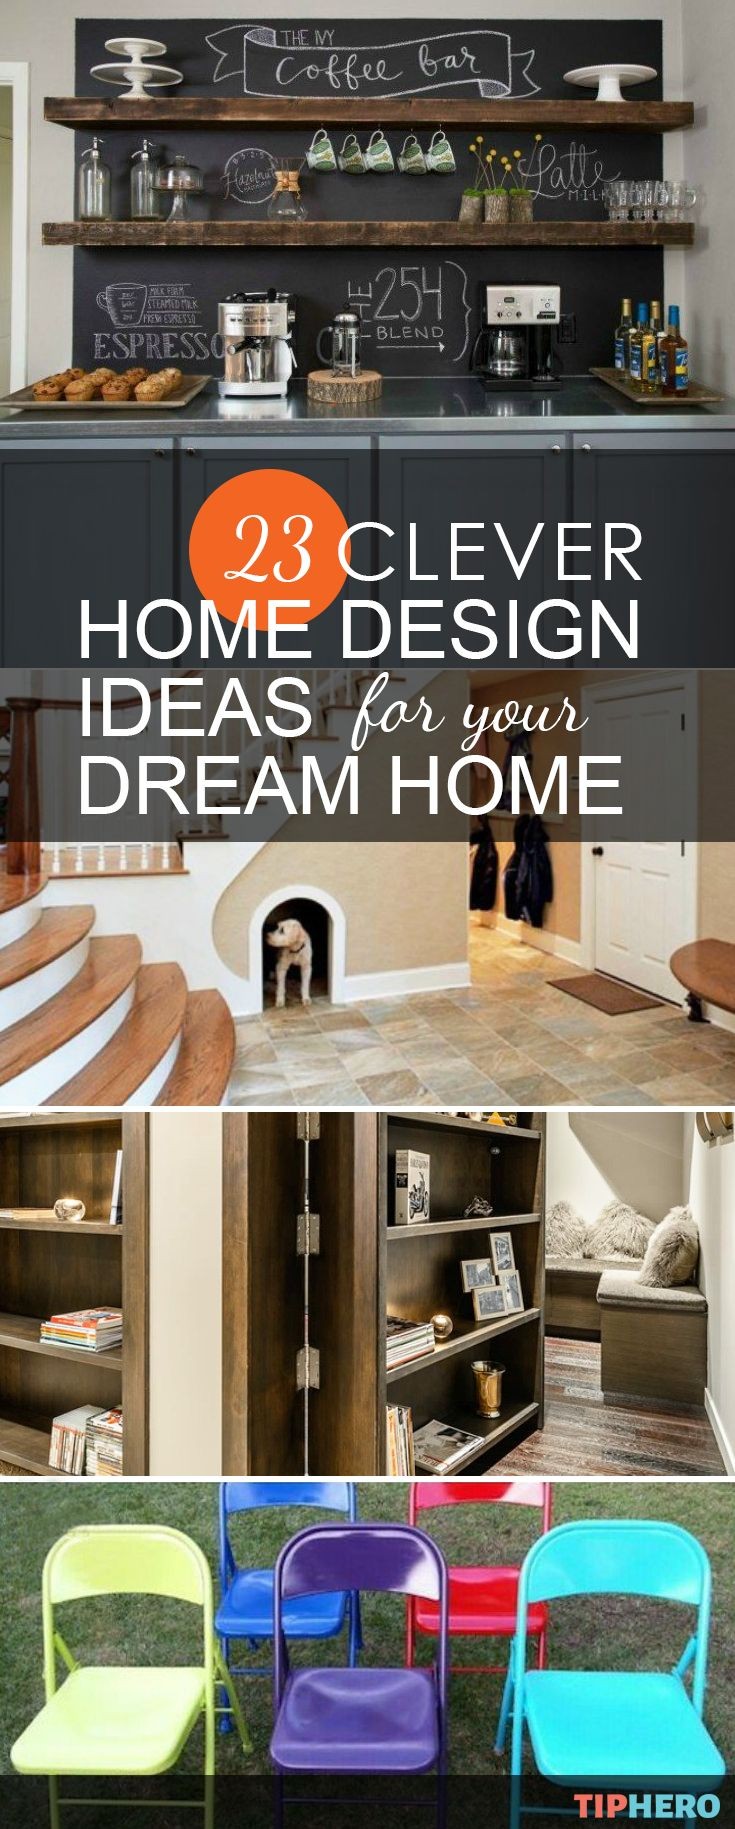 23 Clever Design Ideas To Turn A House Into A Dream Home